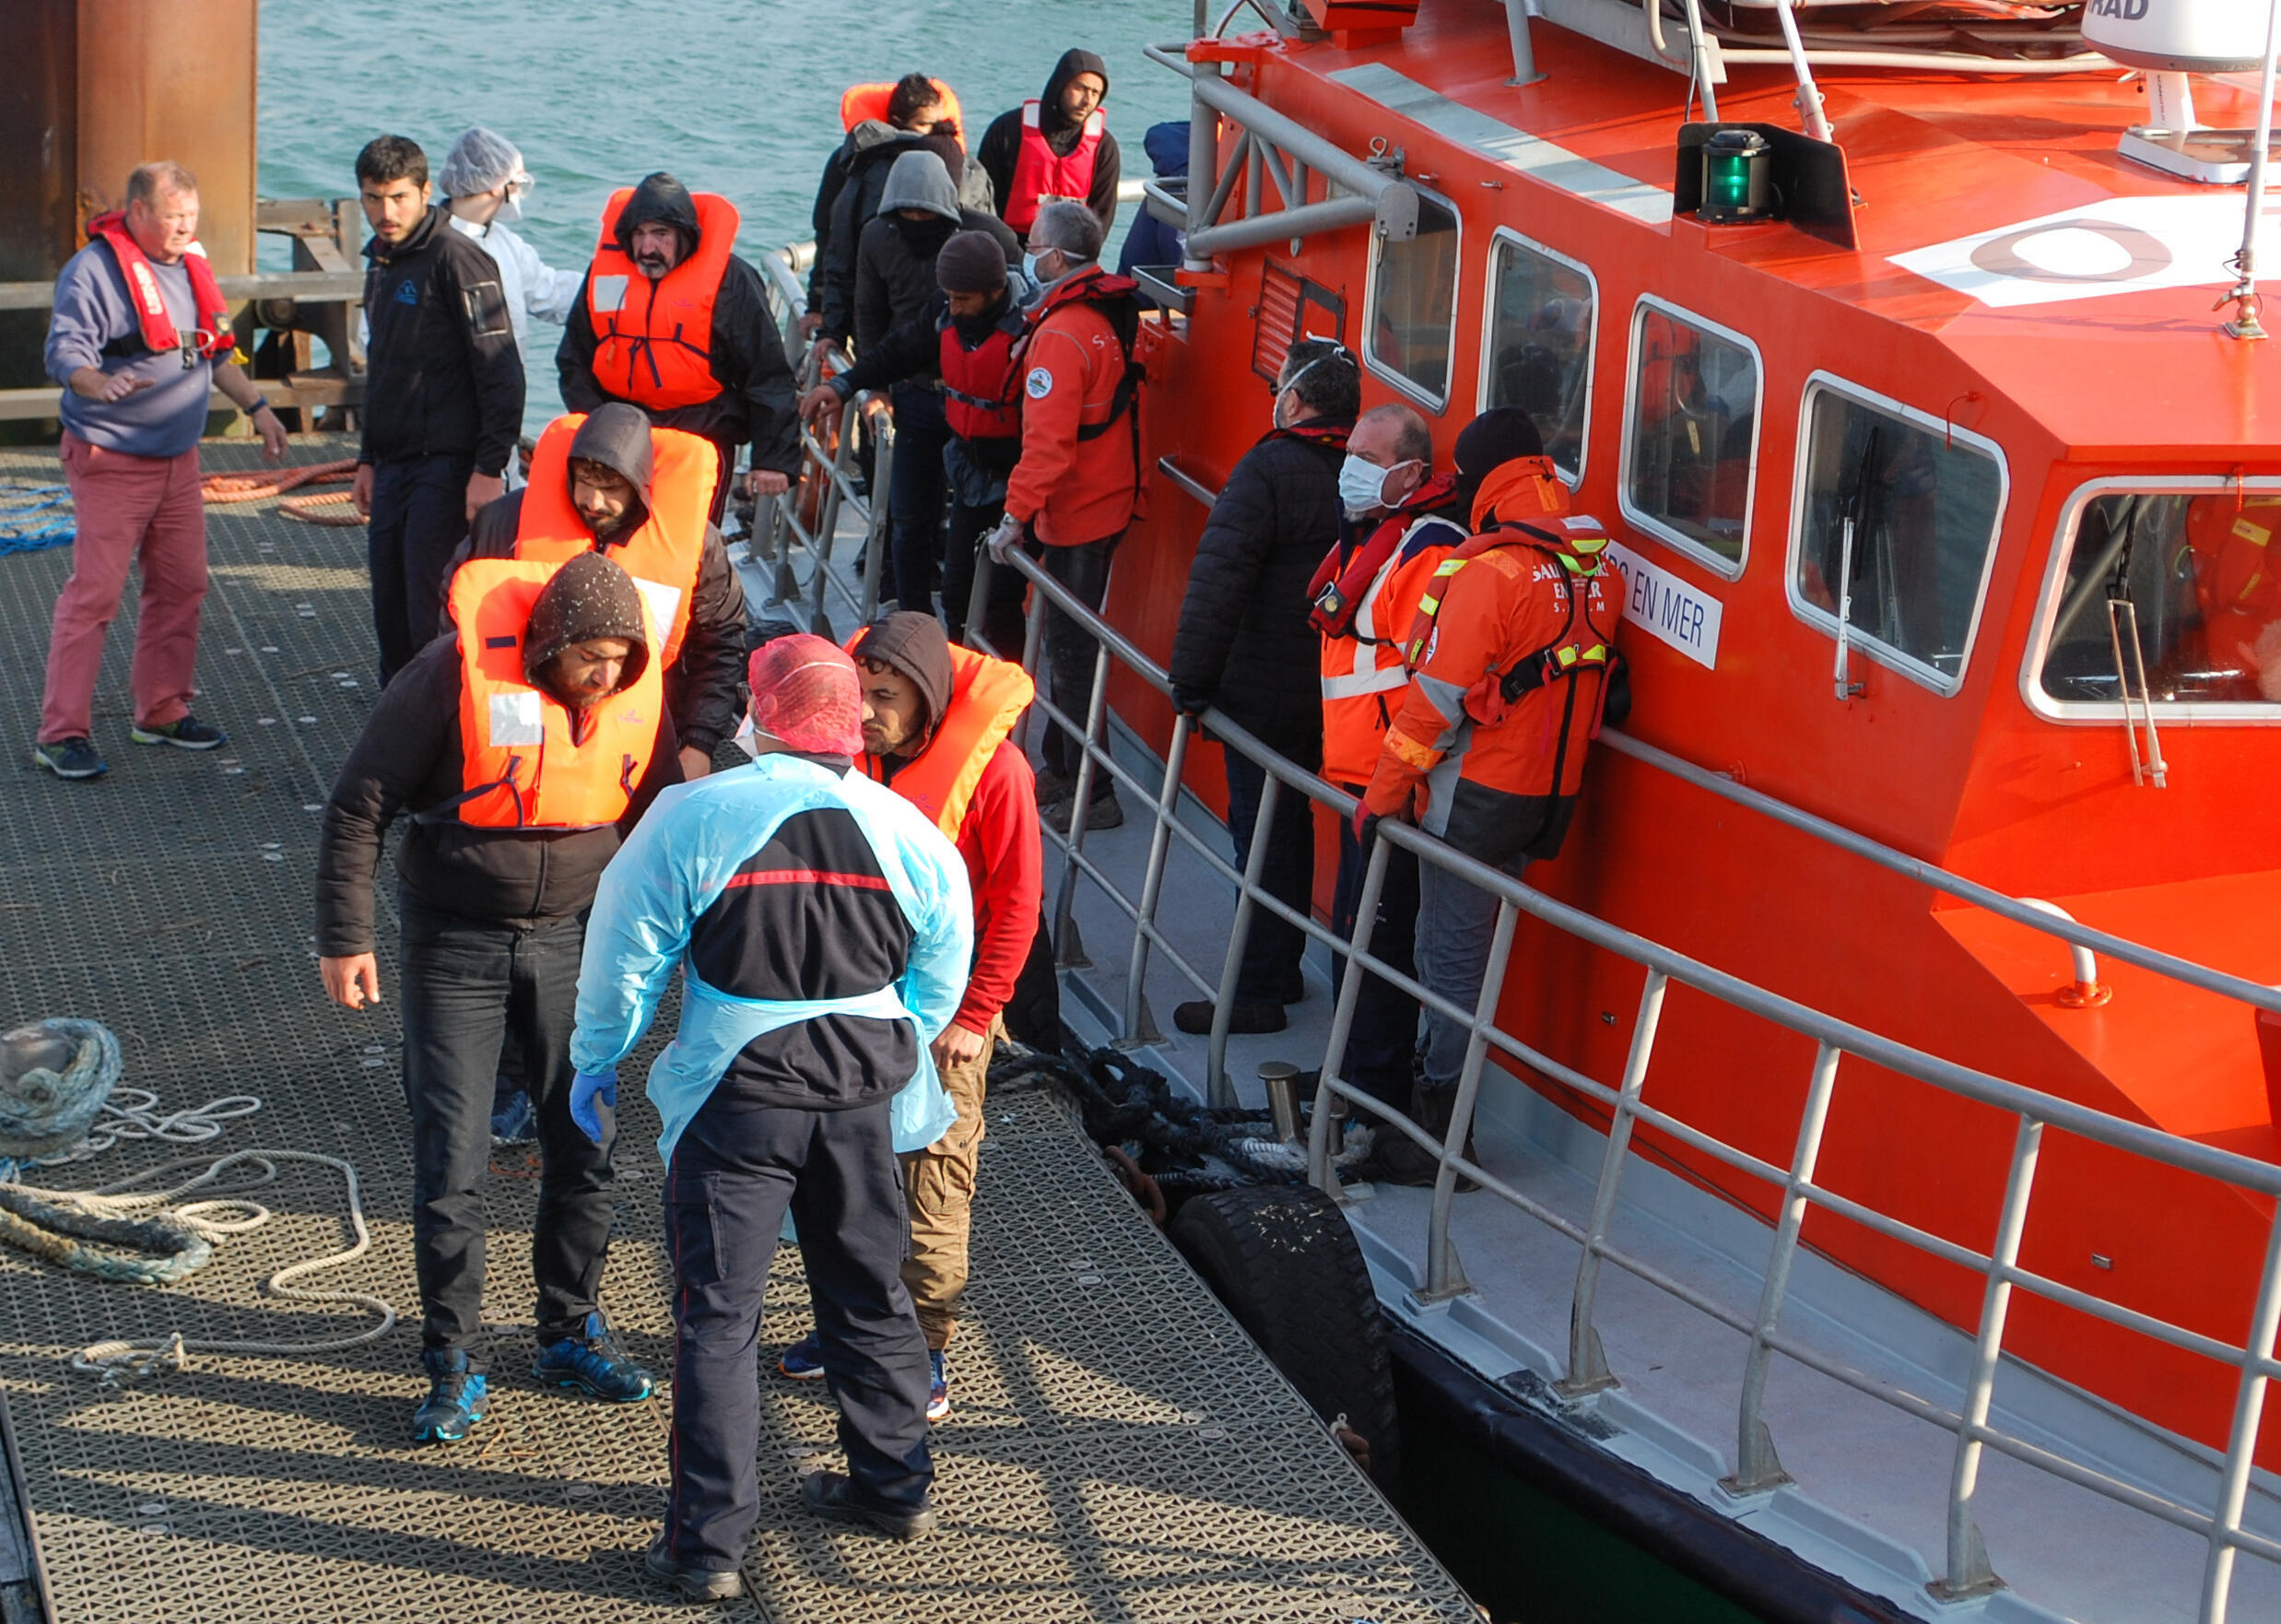 This April 2020 file photo shows Migrants getting off a rescue boat after being rescued along the French coast while trying to cross the Channel to the UK.